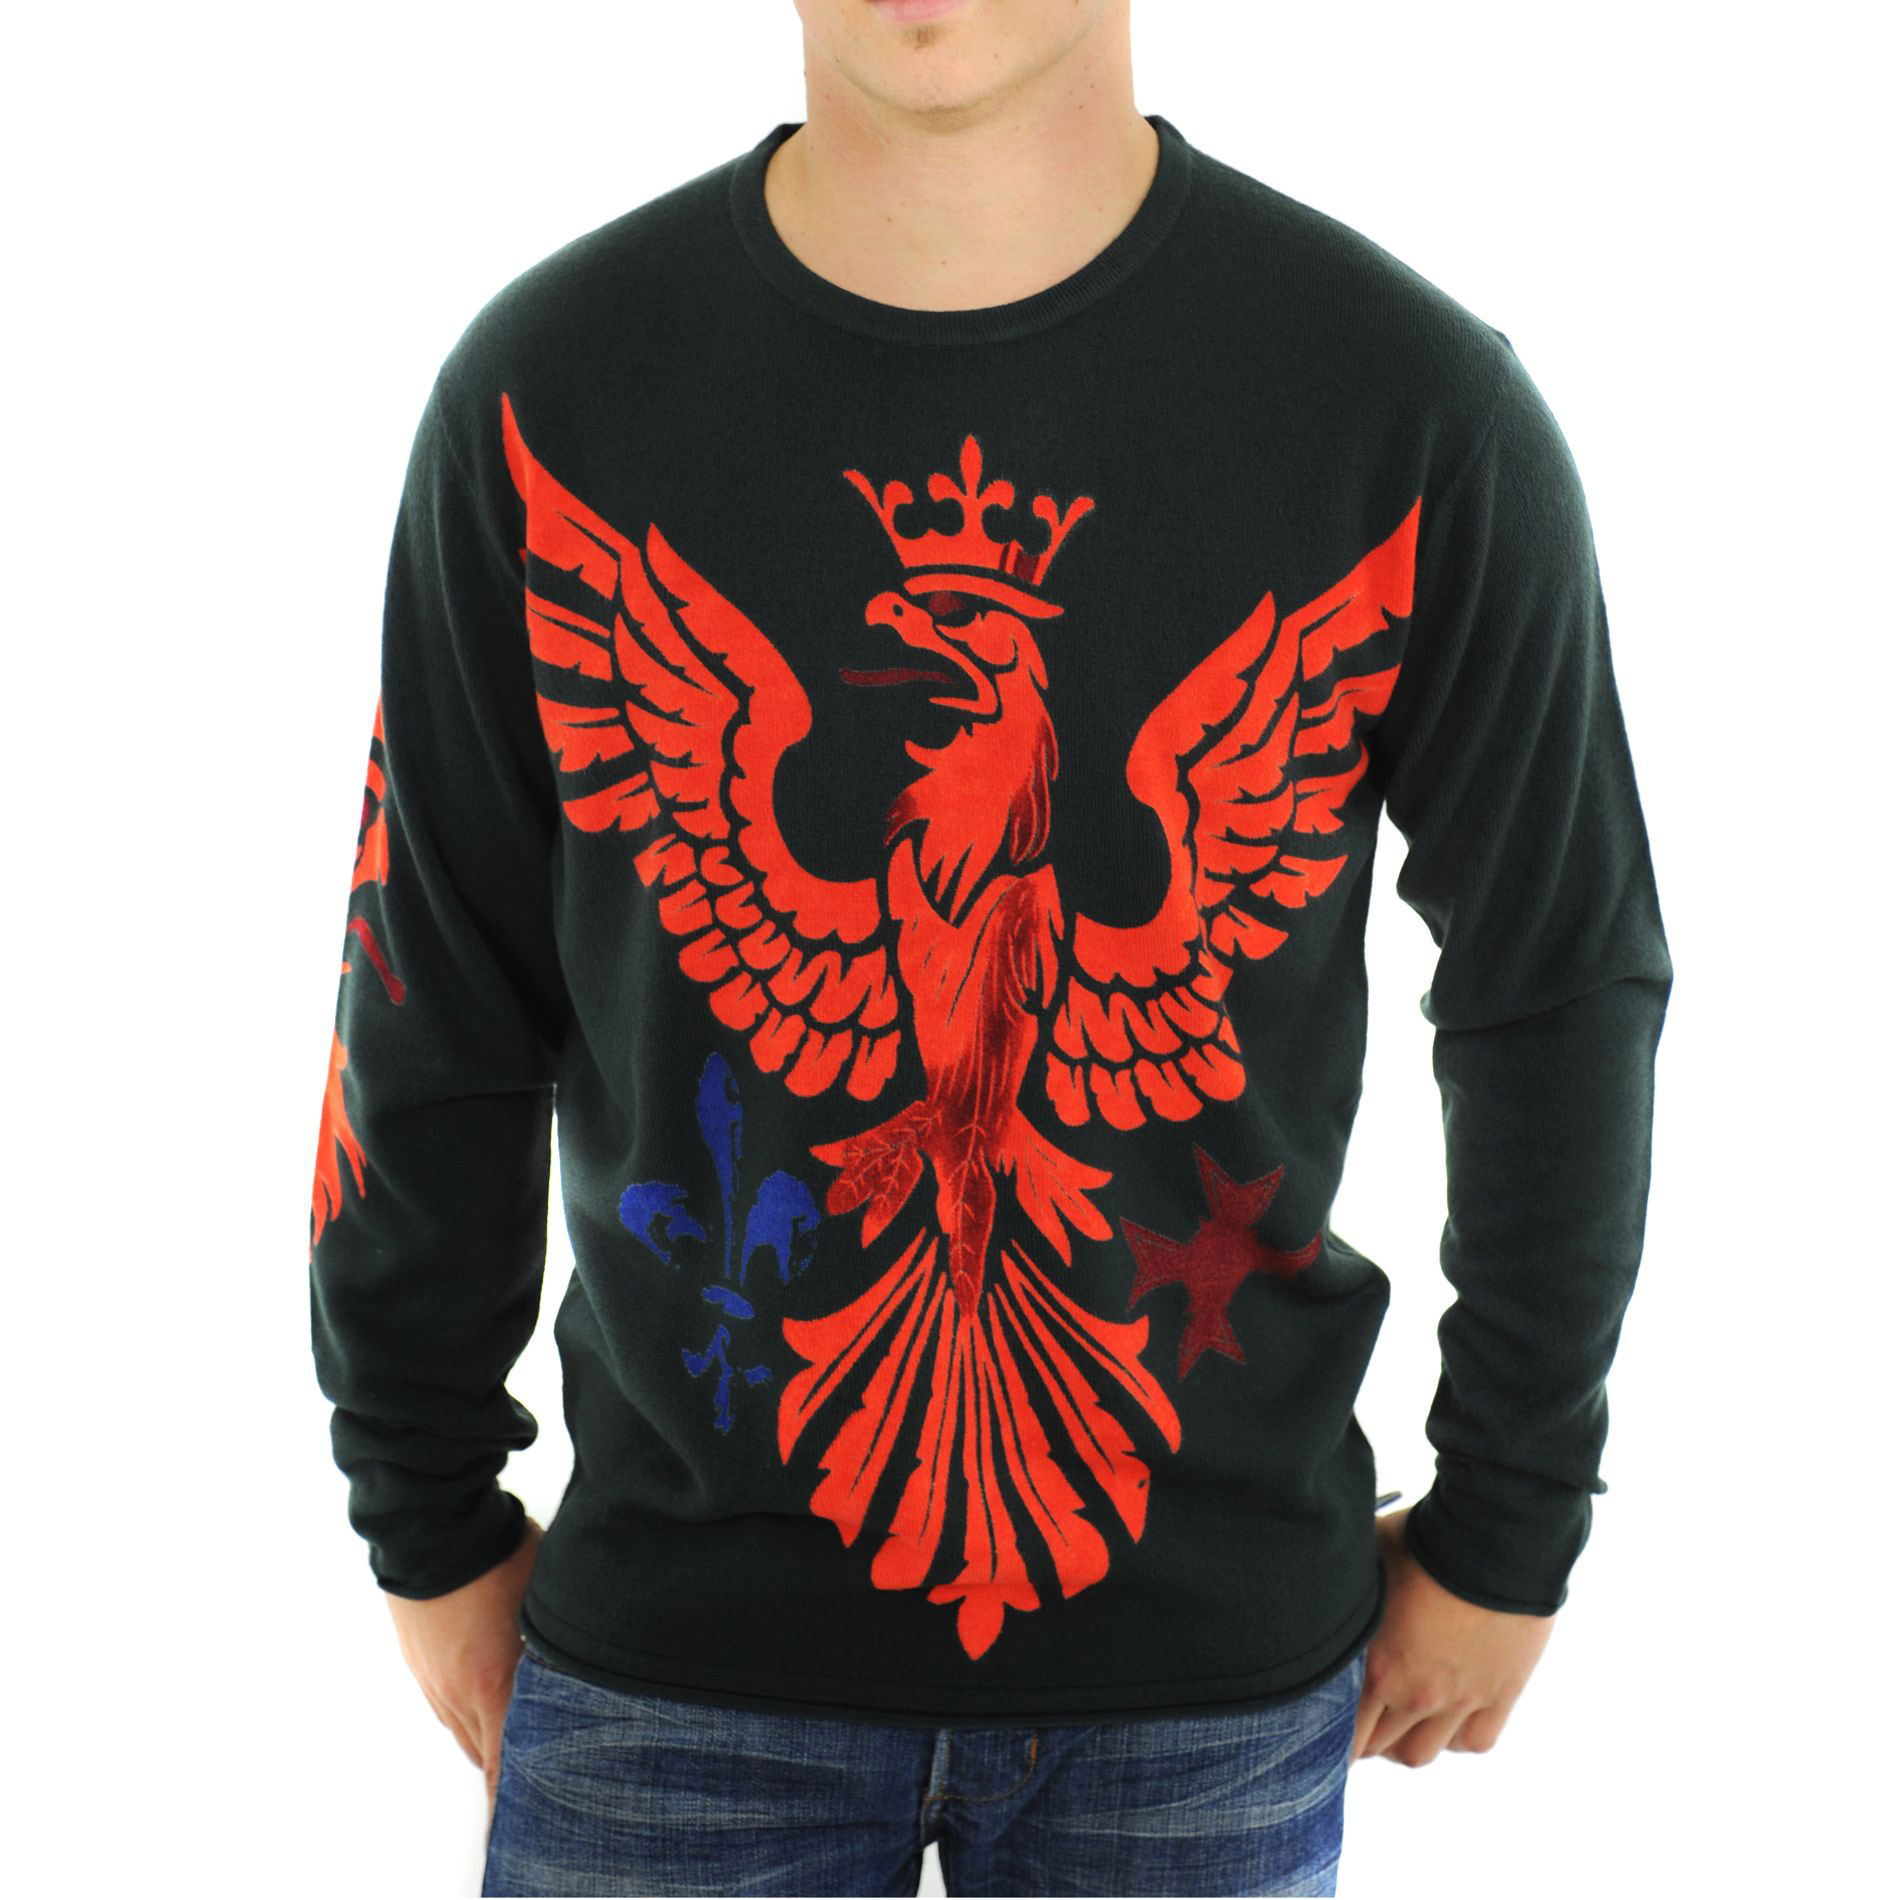 RAW-7 G09H03-RRE Raw7 Men's Black Crewneck Sweater Red Eagle Design